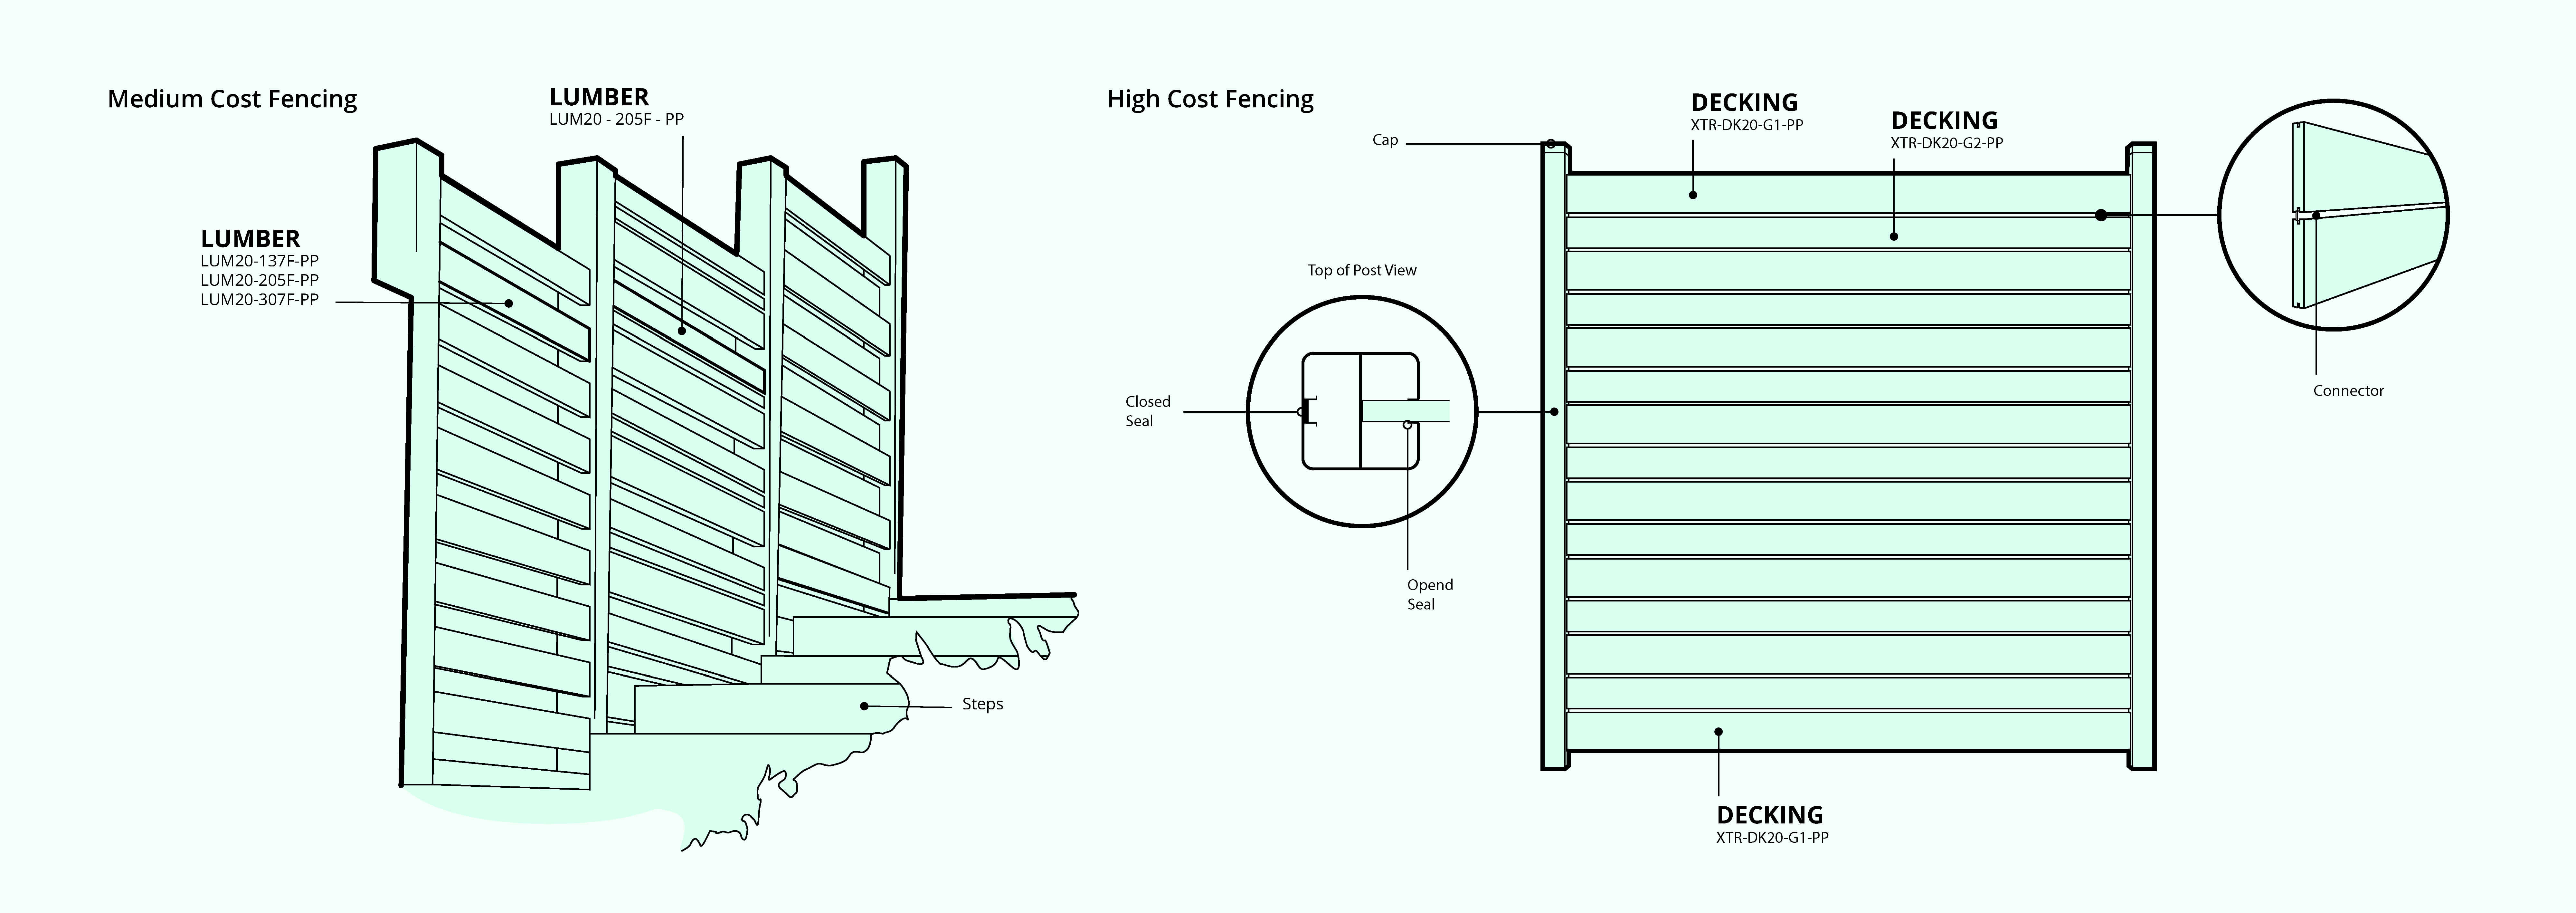 fencing design layout